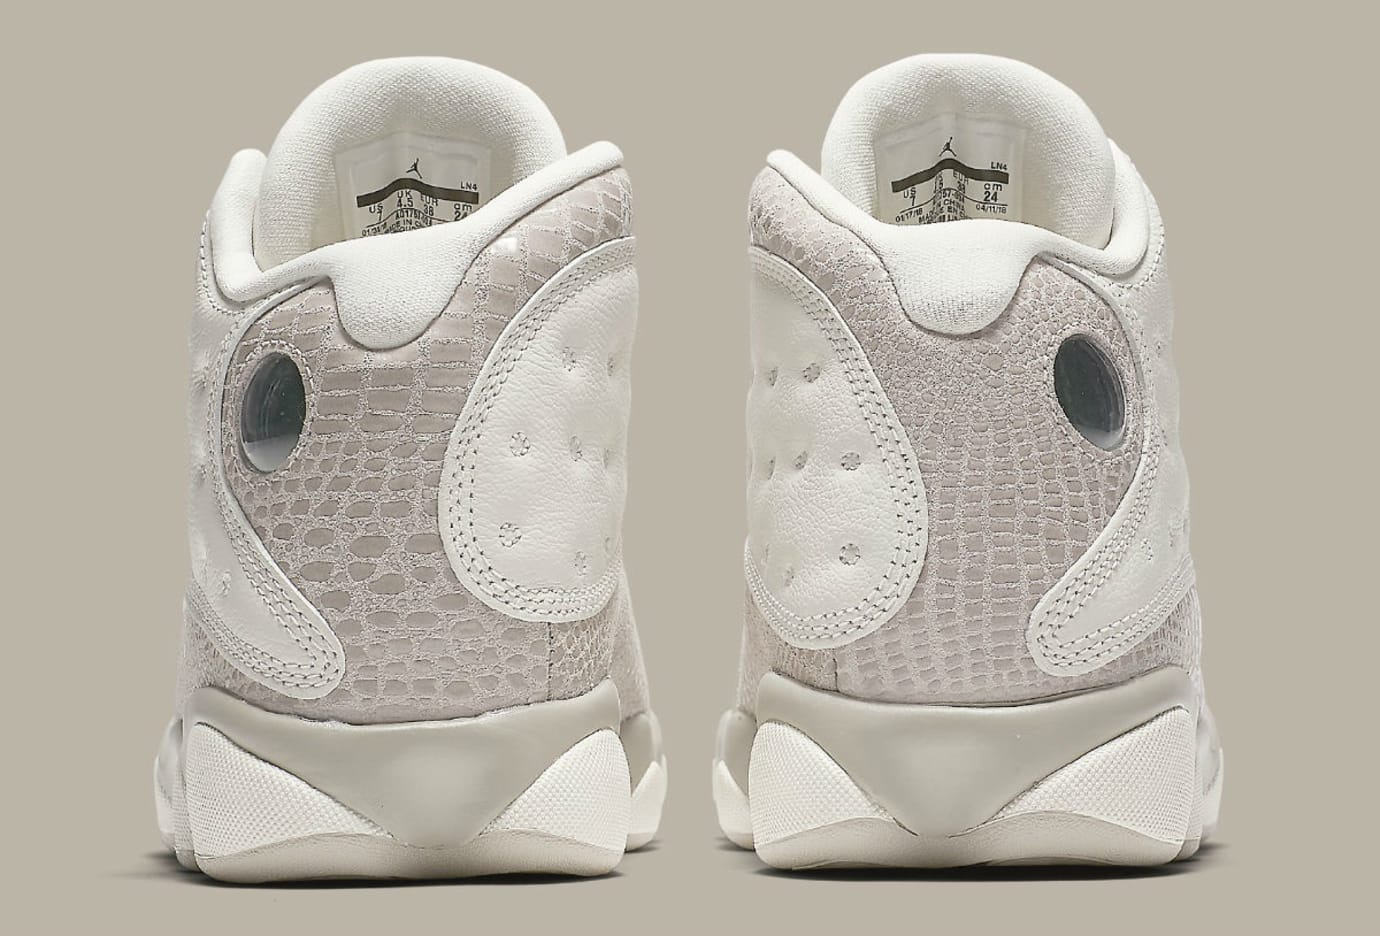 wholesale dealer d114e 30b93 Image via Nike Air Jordan 13 XIII Women s Phantom Moon Particle Release  Date AQ1757-004 Heel